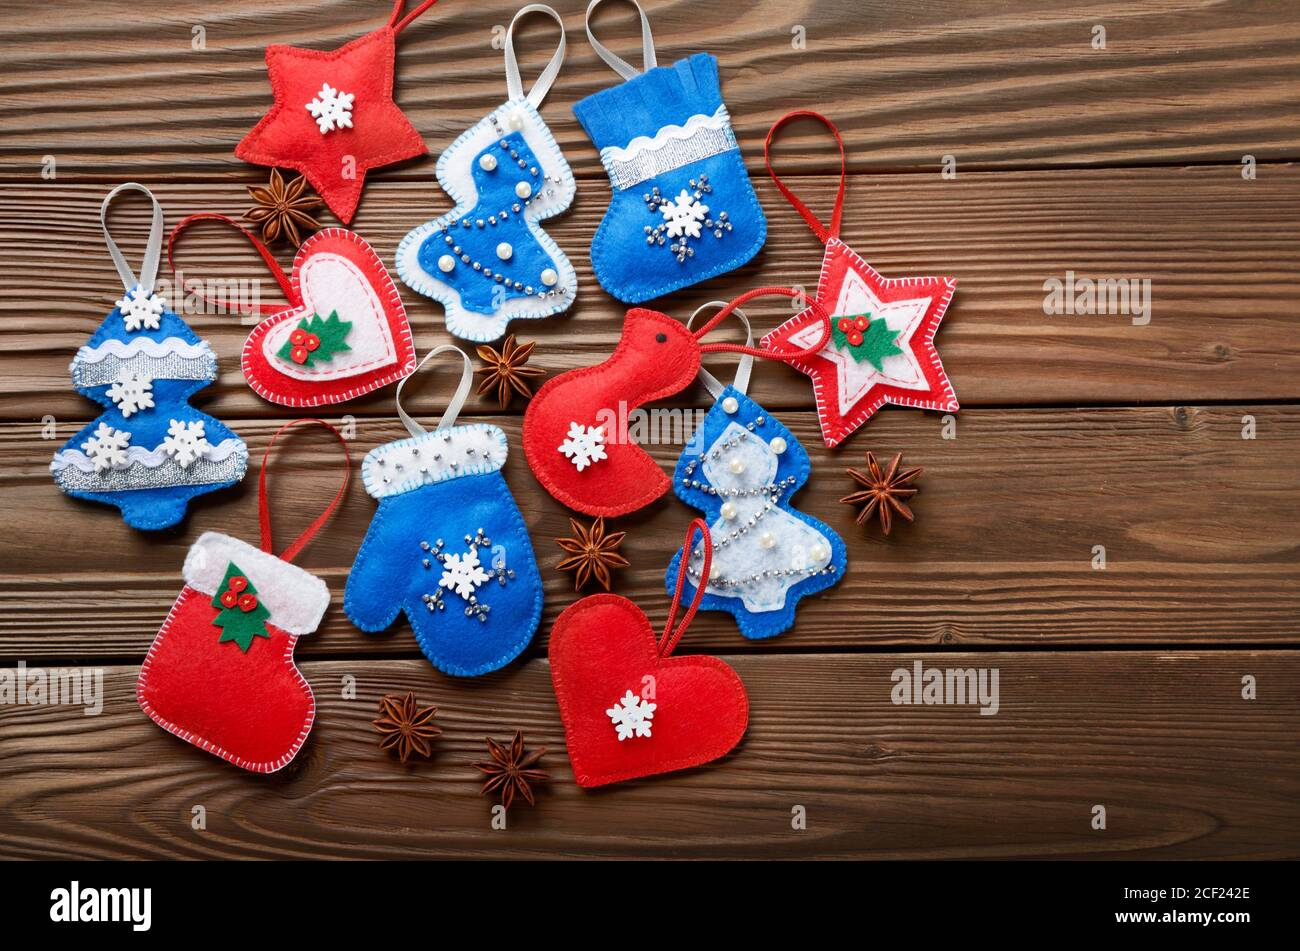 Handmade Rustic Felt Christmas Tree Decorations With Anise On Wooden Table Stock Photo Alamy